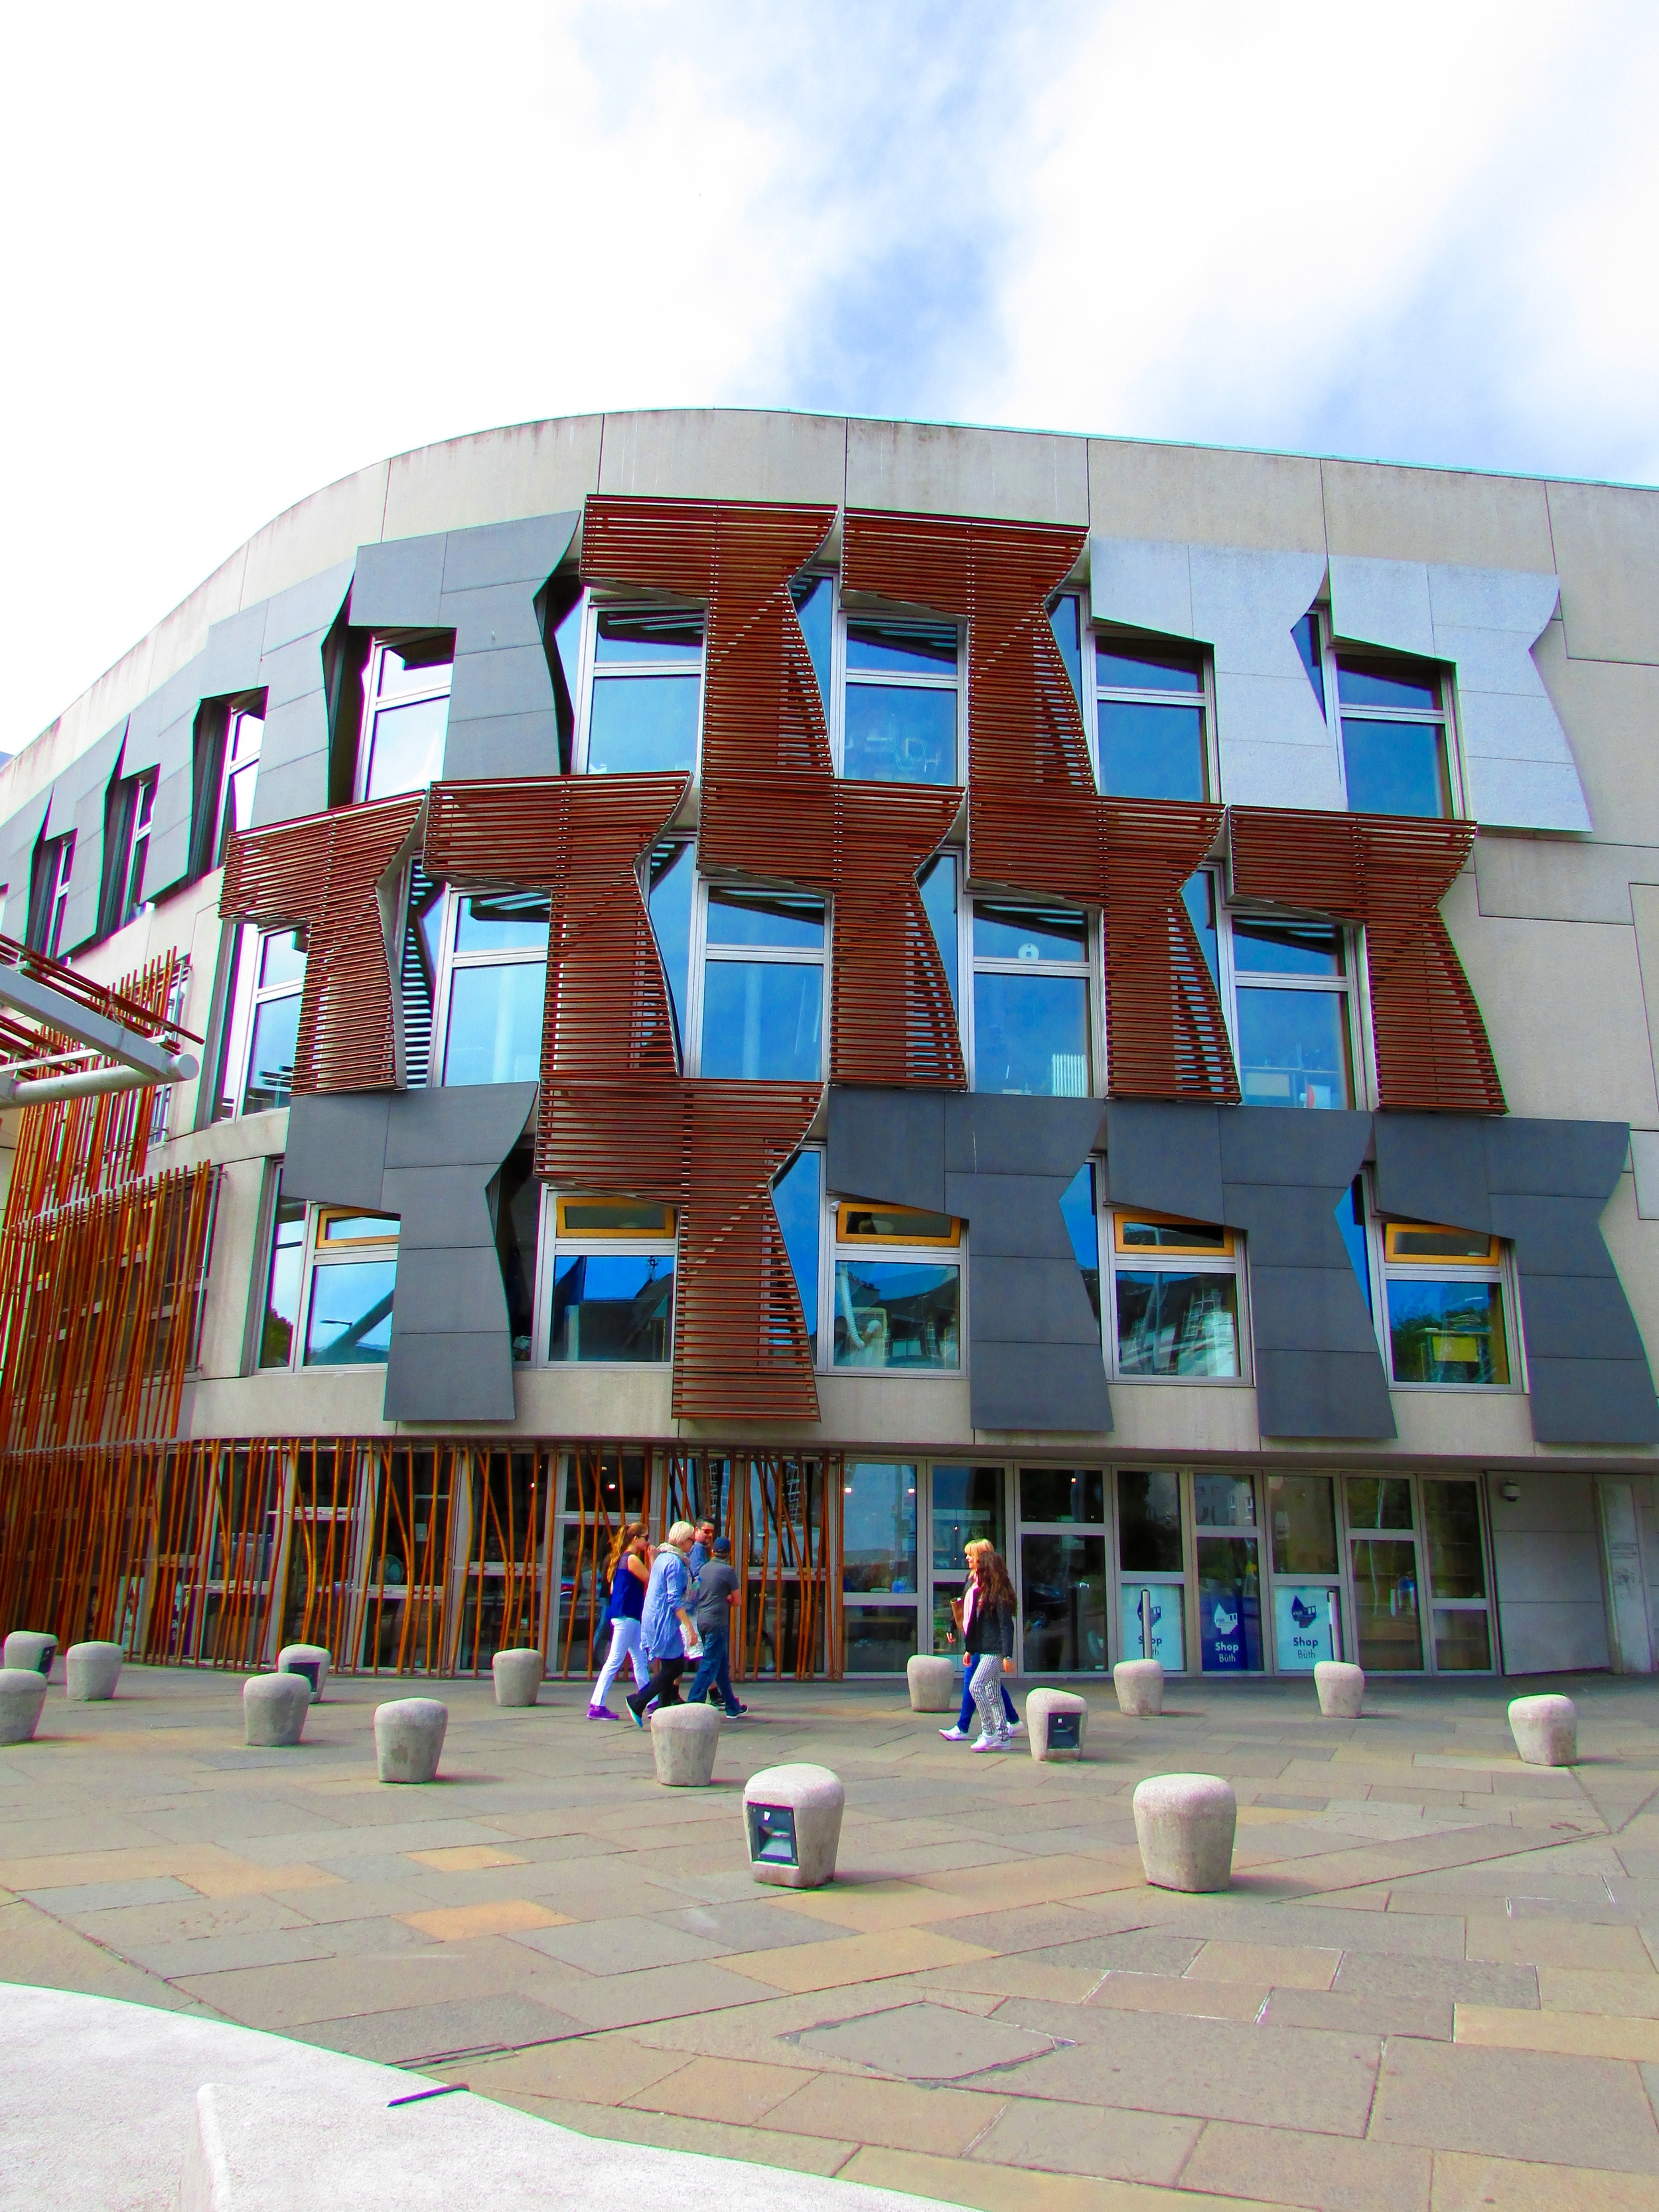 A portion of theScottish Parliament Building